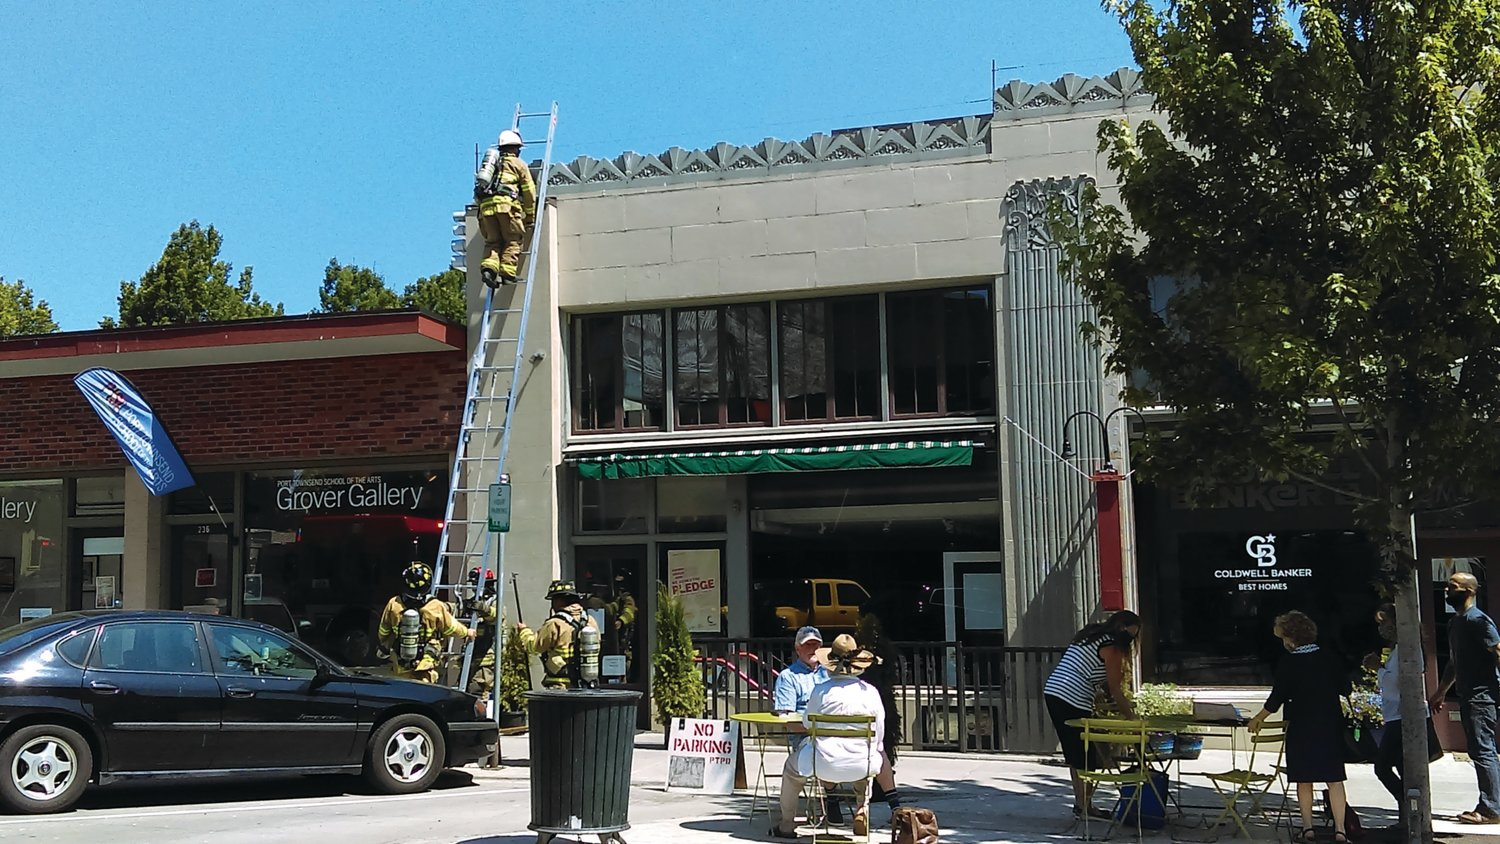 A commercial fire alarm on Taylor Street prompted a mass response by local authorities at lunchtime Thursday.